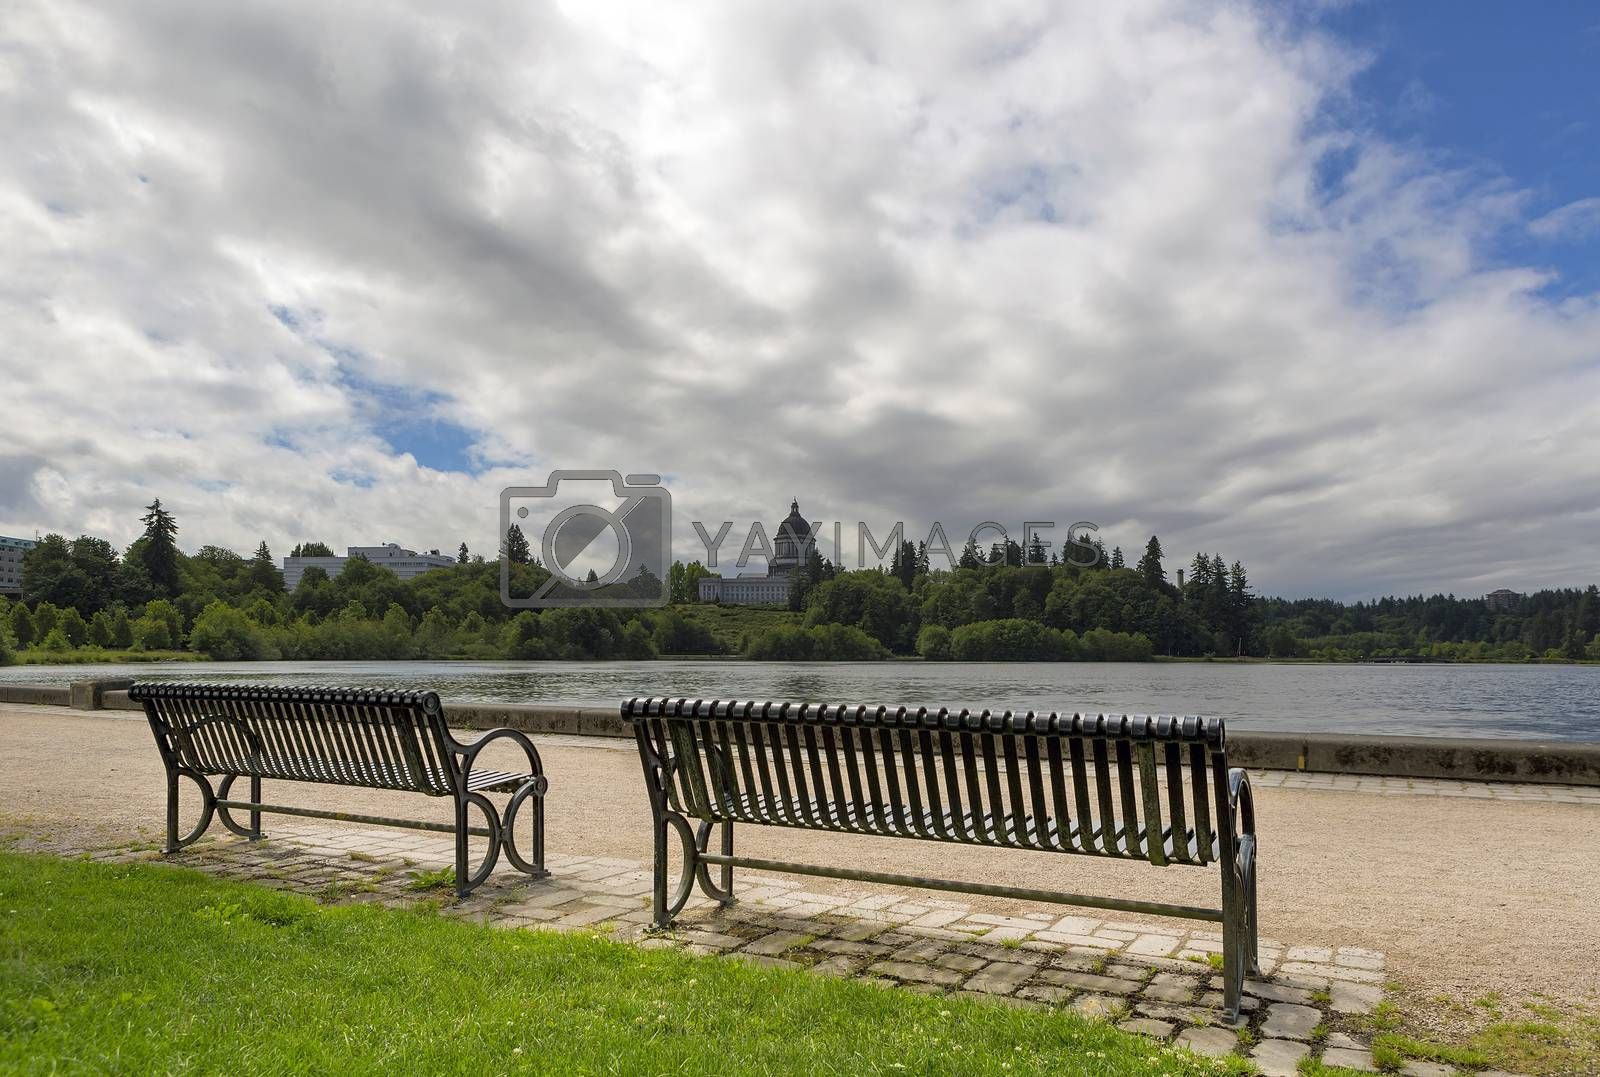 Park bench along scenic Capitol Lake in Olympia Washington State on a cloudy day